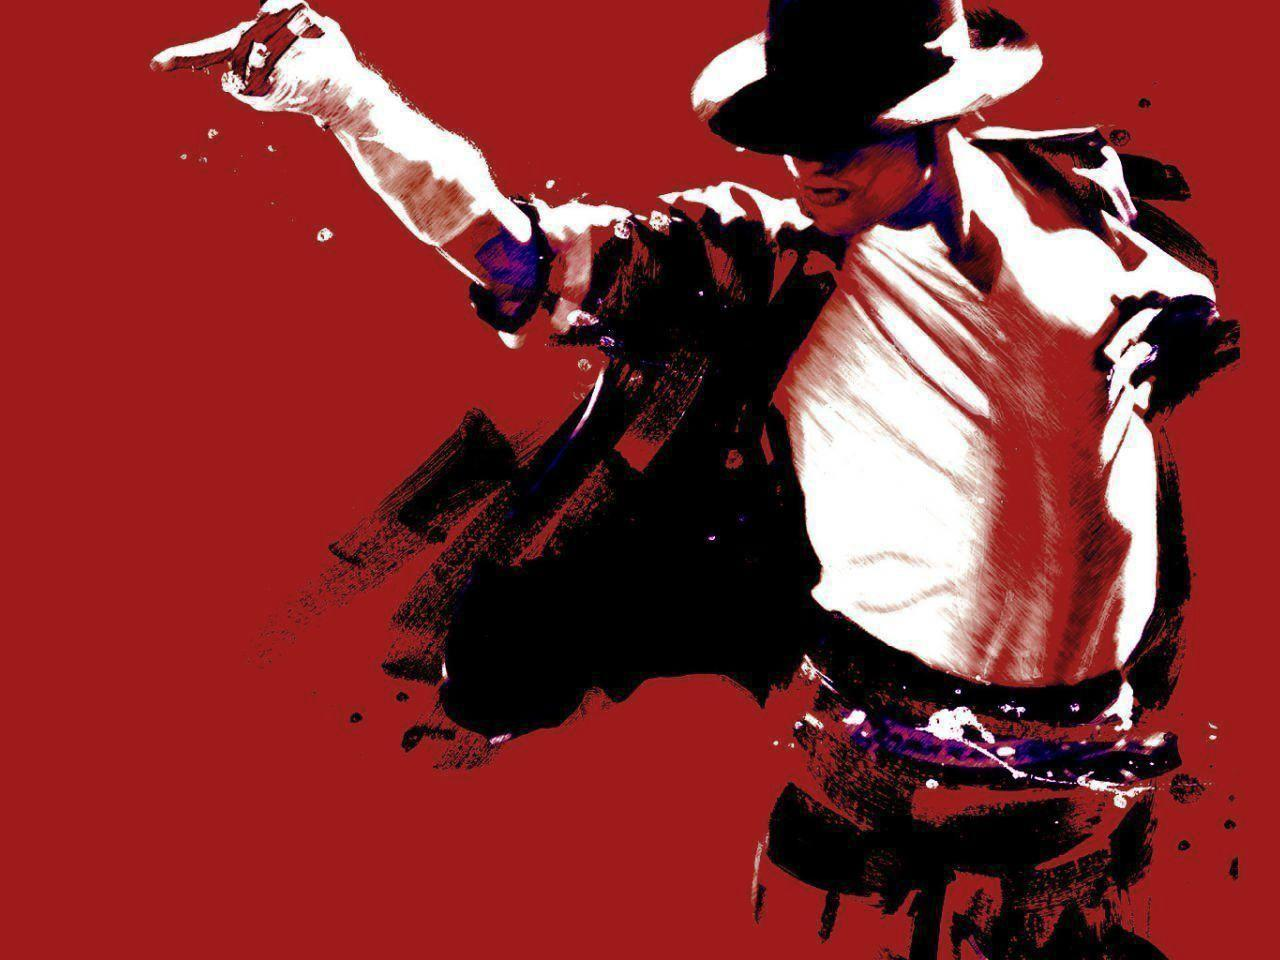 Outstanding Creative Michael Jackson Wallpaper 1280x960PX